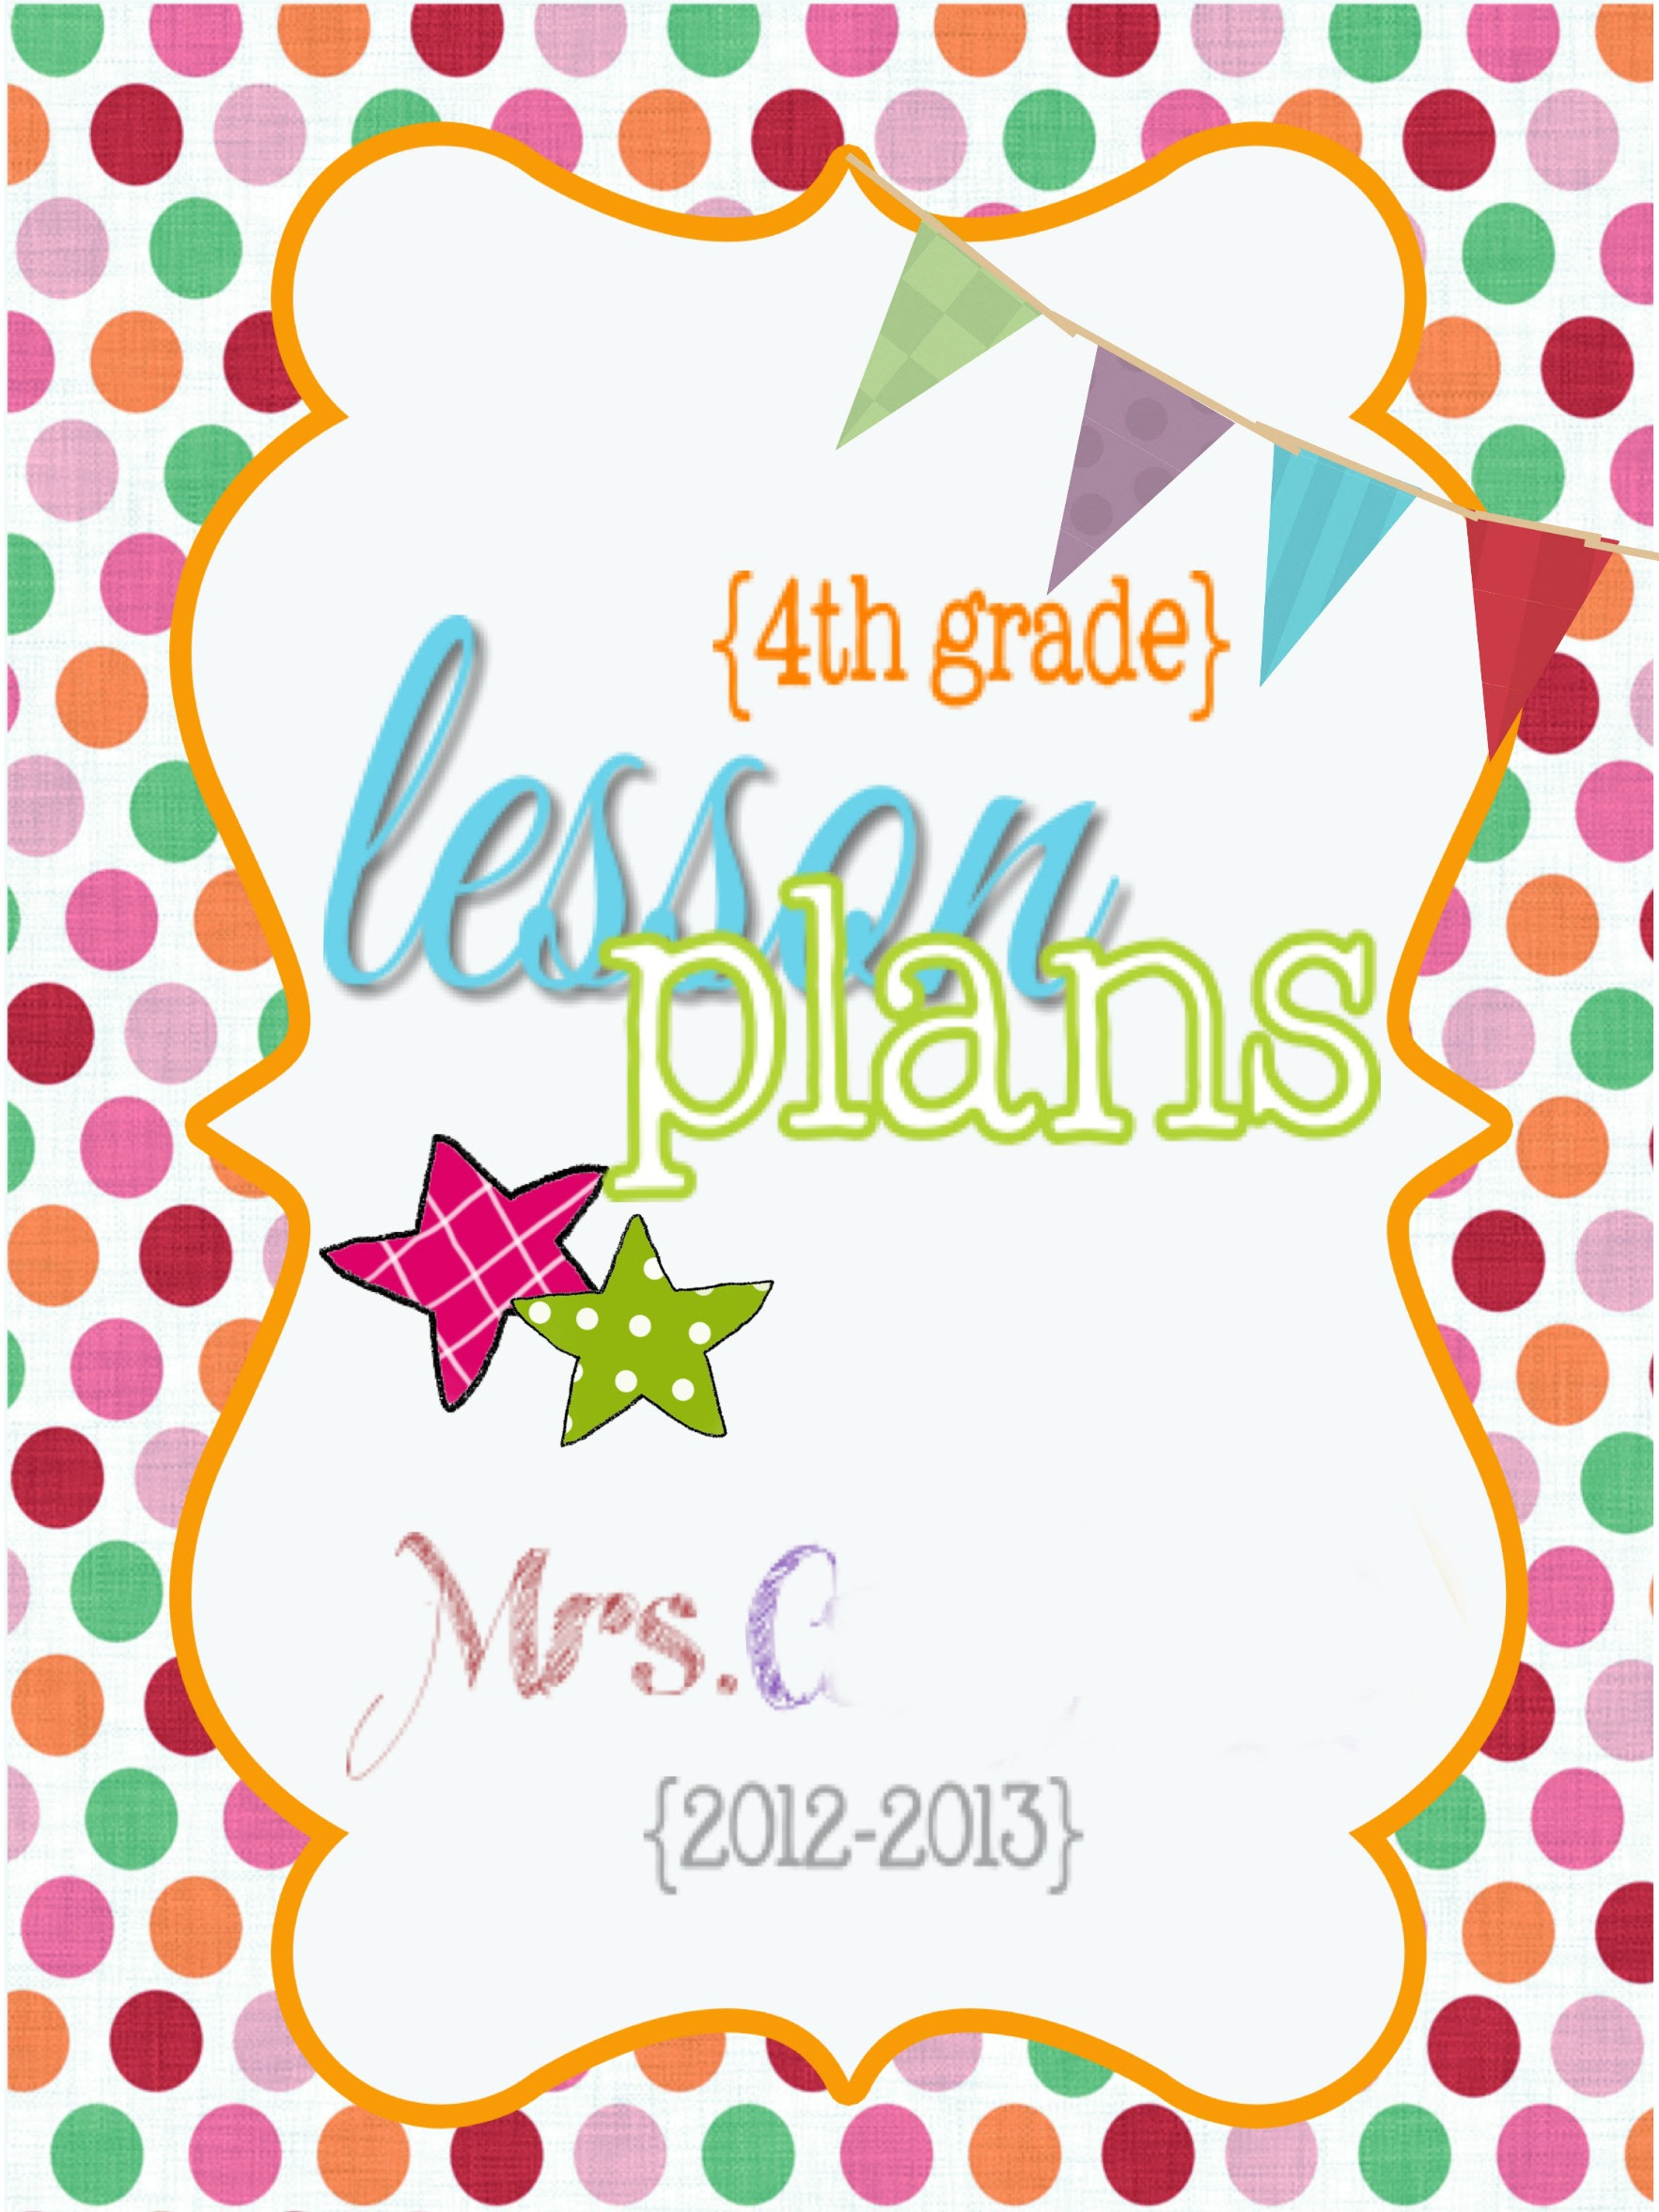 Cute Lesson Plan Template… Free Editable Download! | Living ...